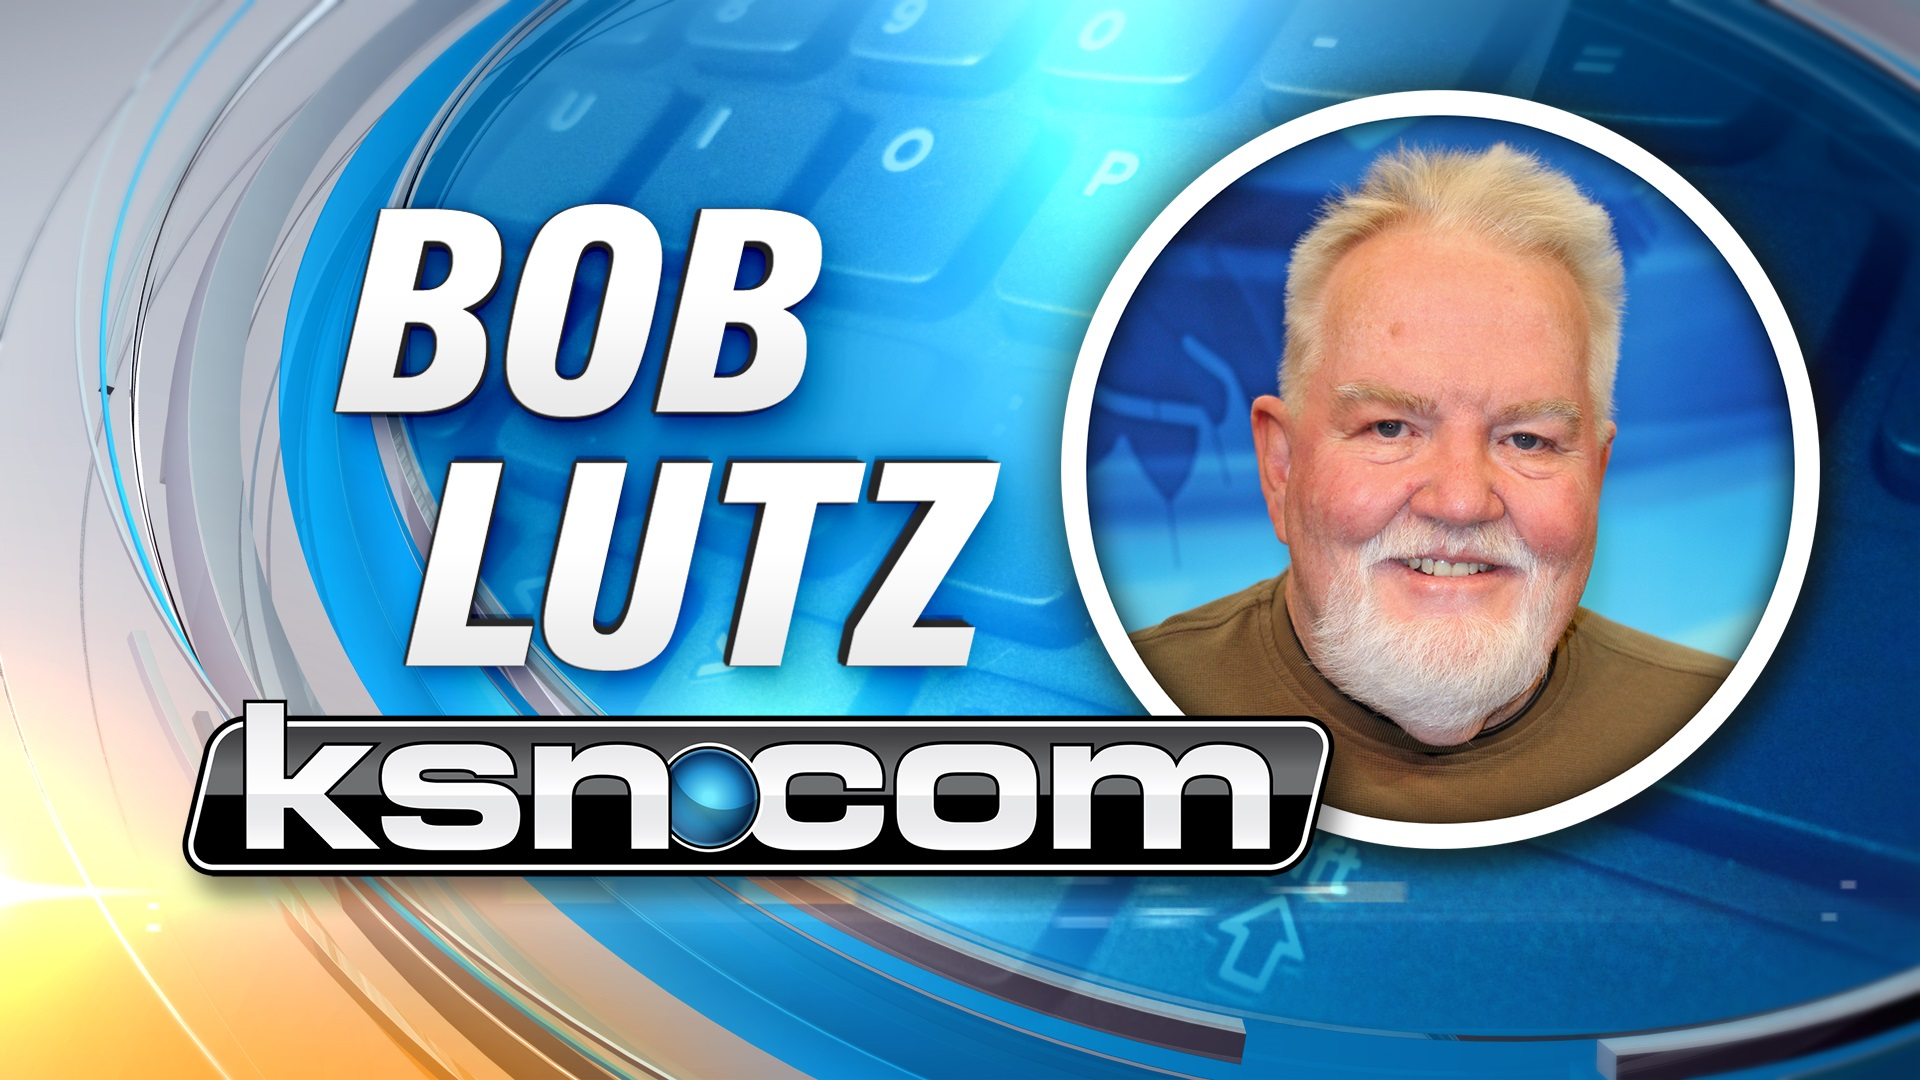 Bob Lutz on KSN